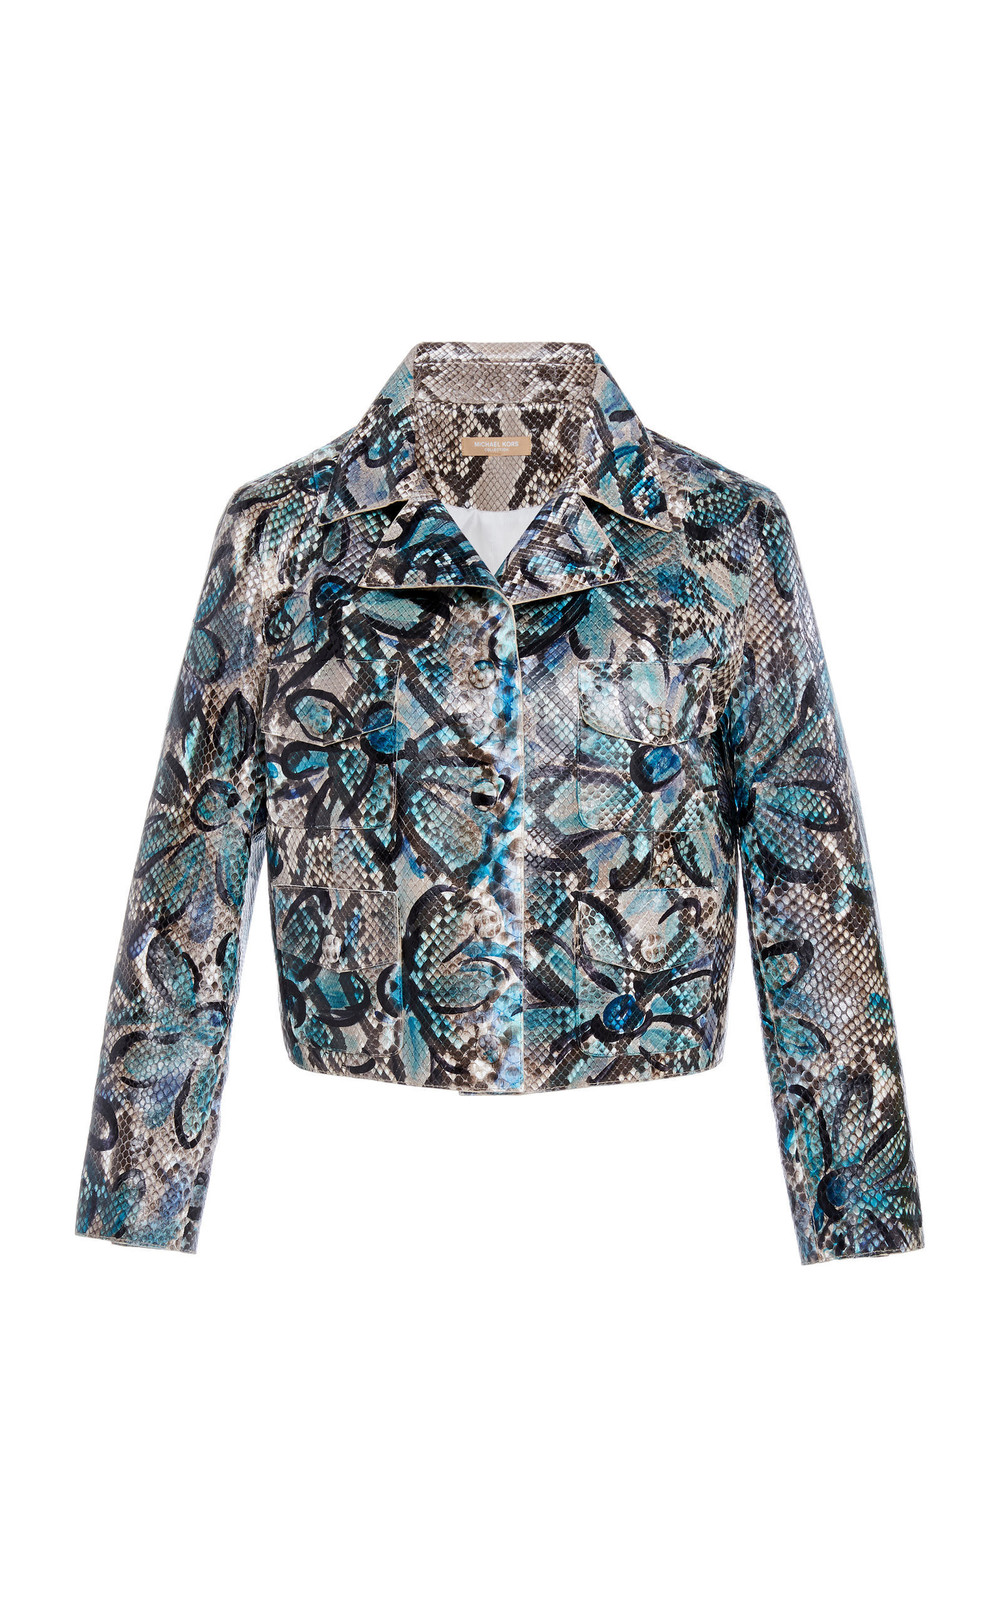 Michael Kors Collection Jean Python Skin Jacket in blue